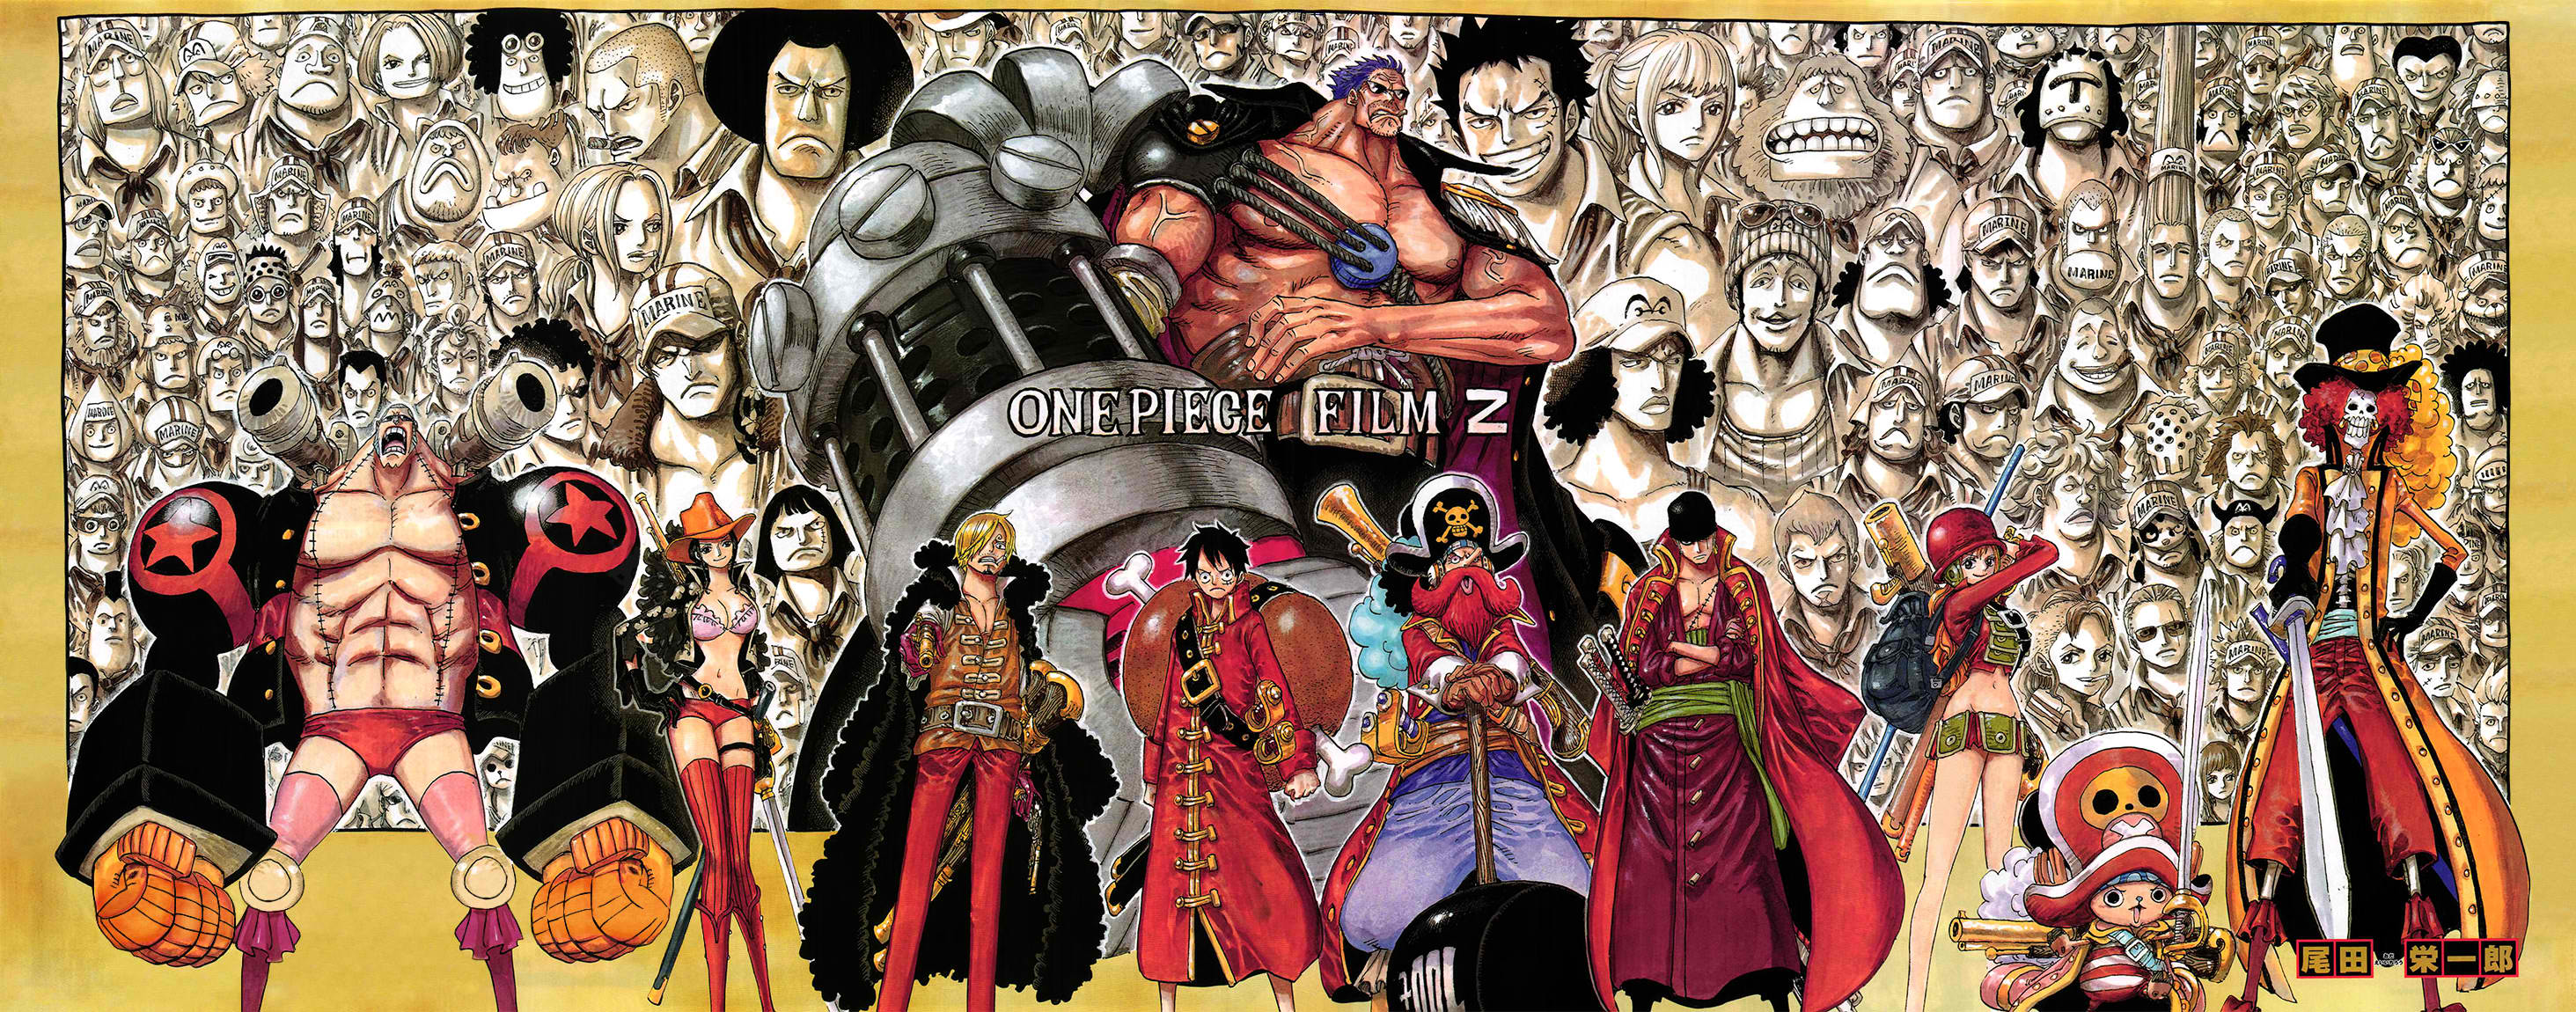 One Piece Film Z Review Simple Does It